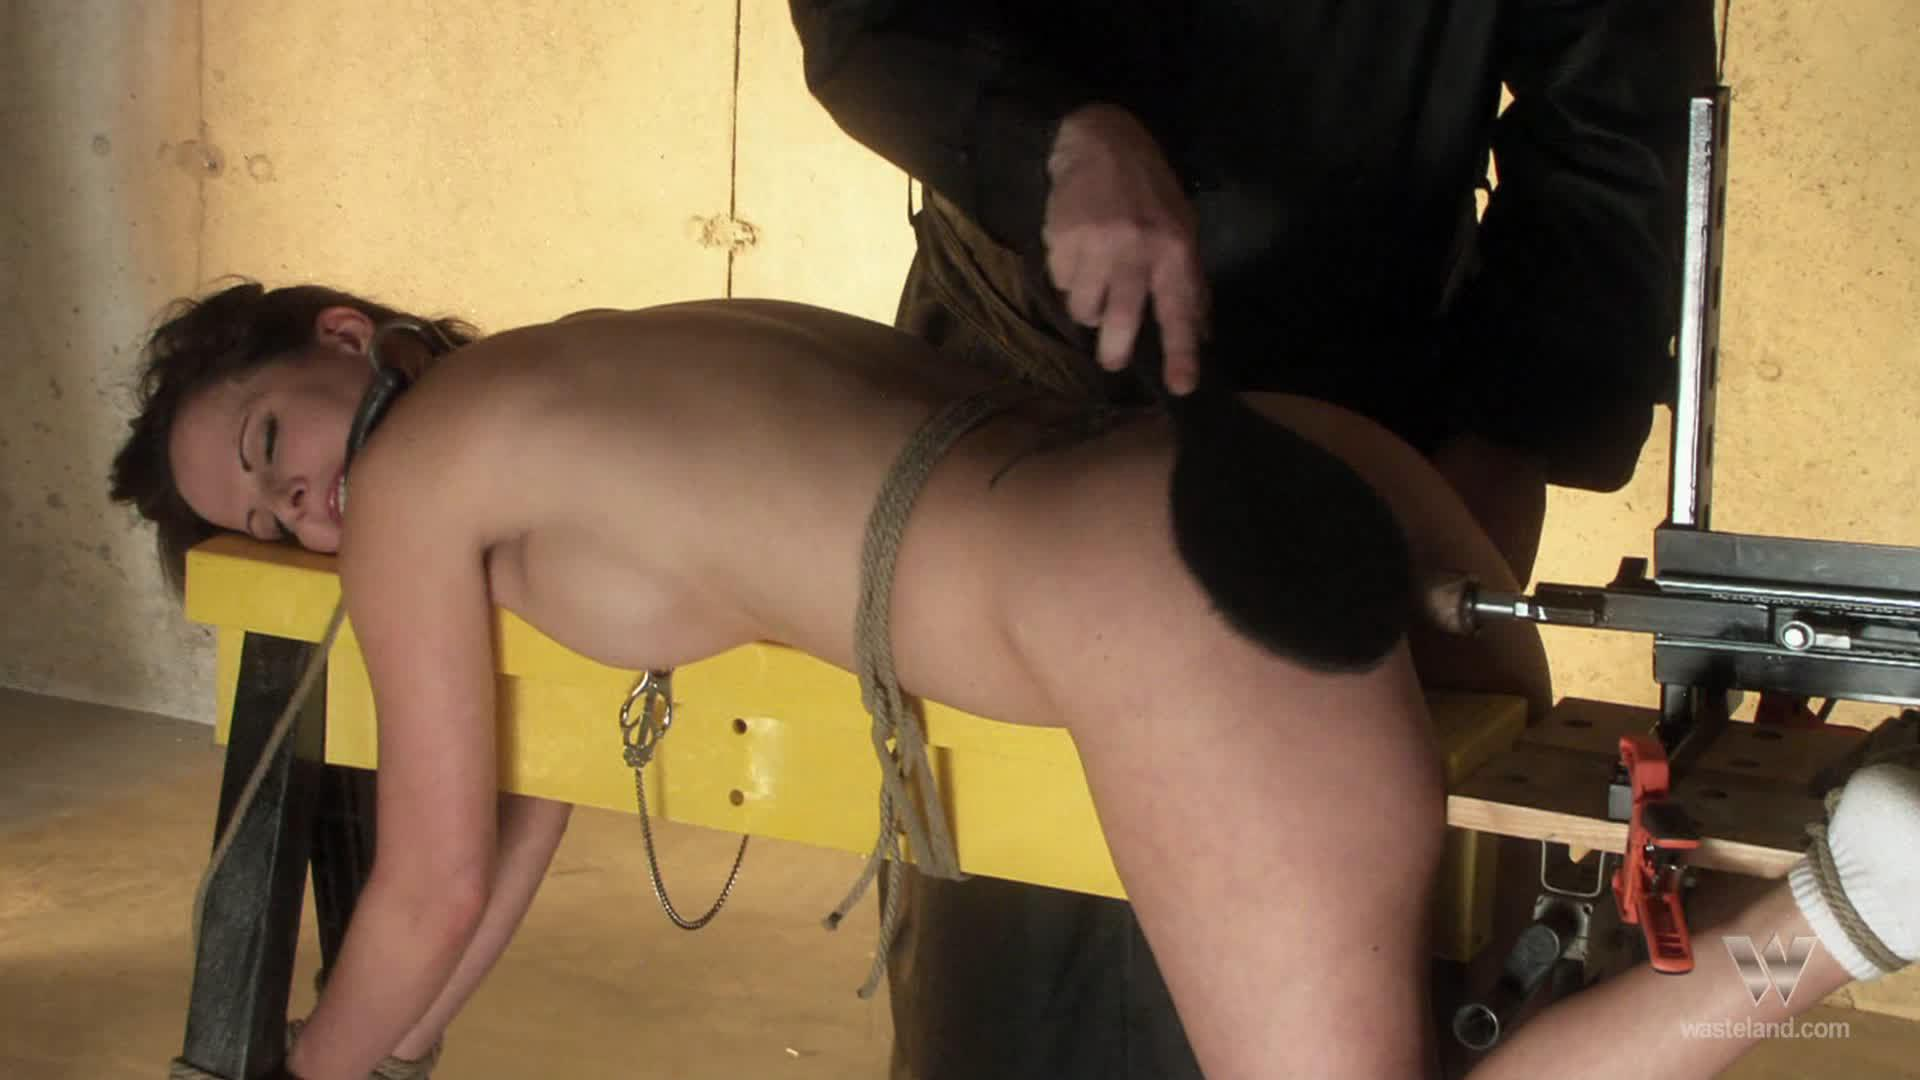 The Man In Black / Watch this lovely brunette bondage slave succumb to a fucking machine and her Master's paddle in a kinky clip from Wasteland Studios!